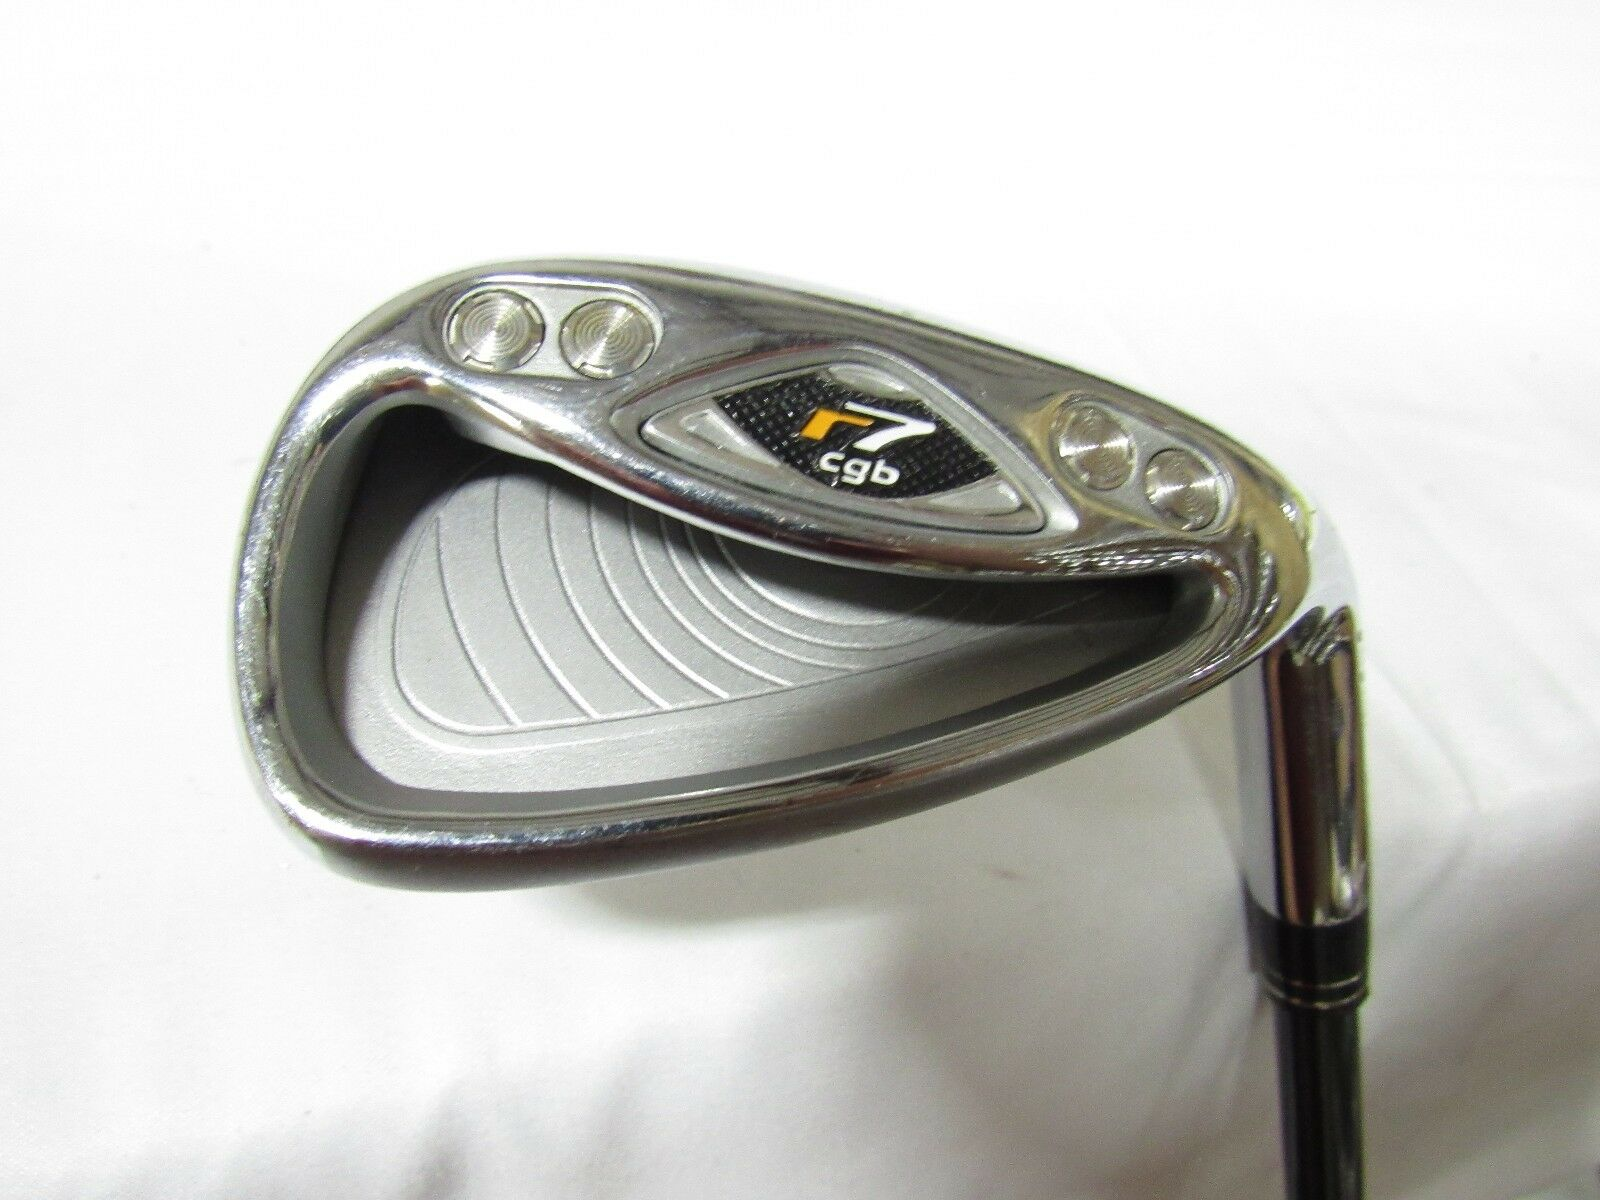 Used RH TaylorMade r7 CGB Sand S Wedge r7-55 Graphite Regular Flex R-Flex